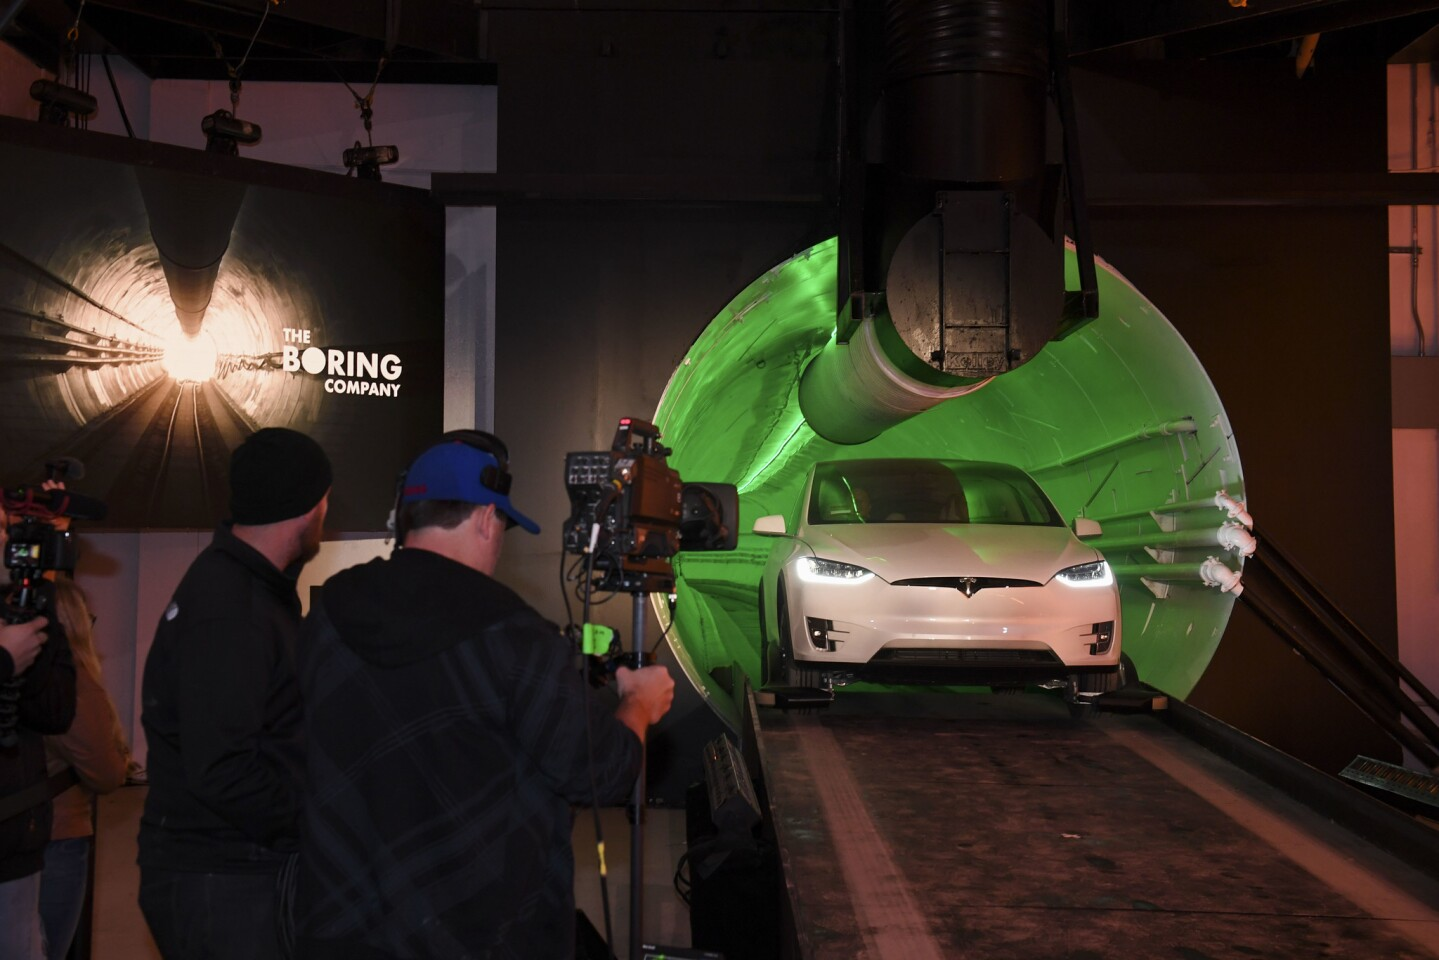 Elon Musk arrives in a modified Tesla Model X at an unveiling event for a test tunnel dug by Boring Co. in Hawthorne. Musk is chief executive of both Tesla and Boring Co.